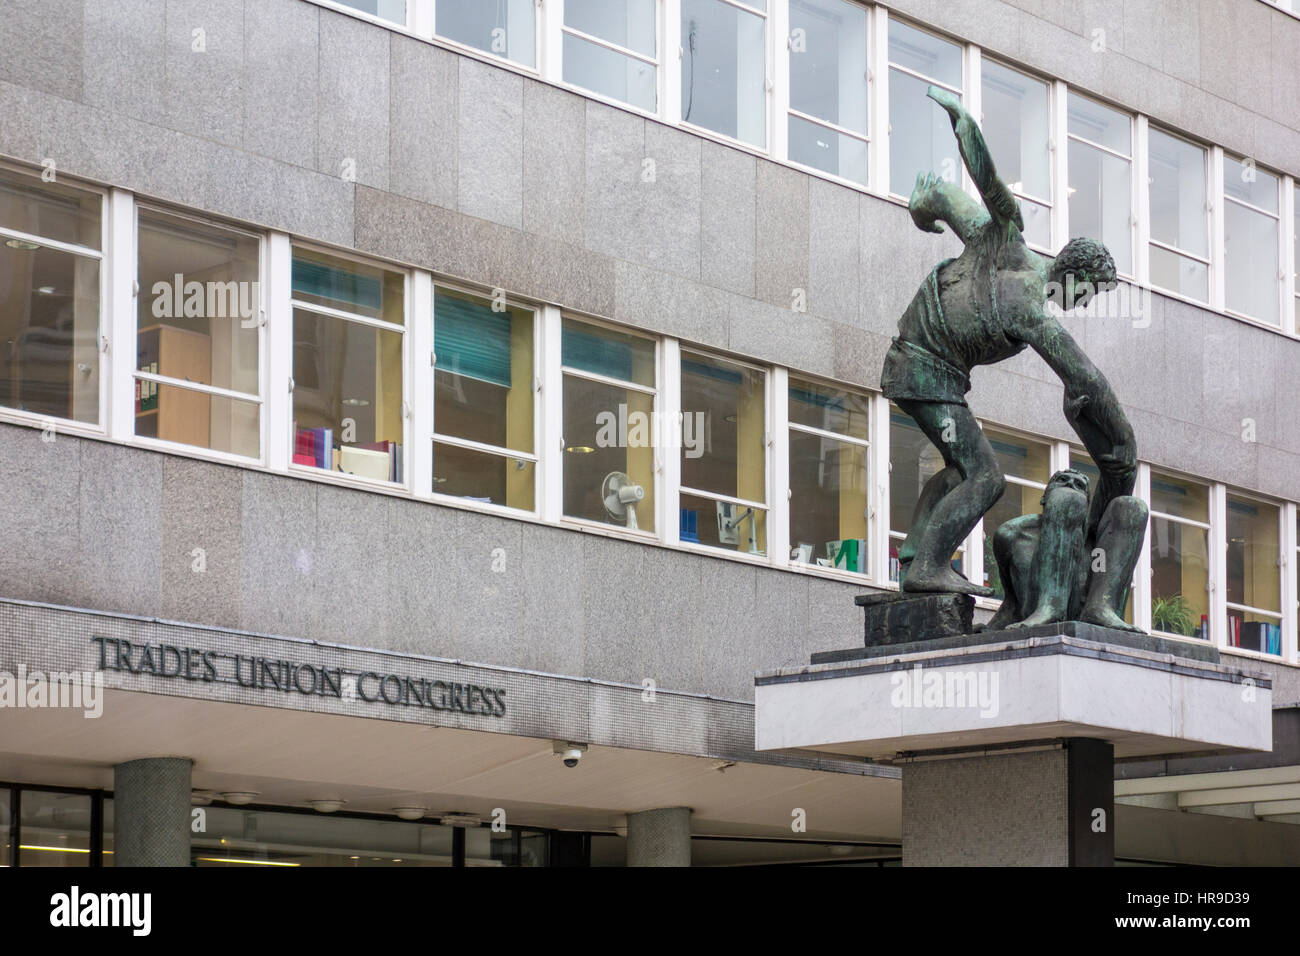 TUC, Trades Union Congress building, Londres, UK Photo Stock